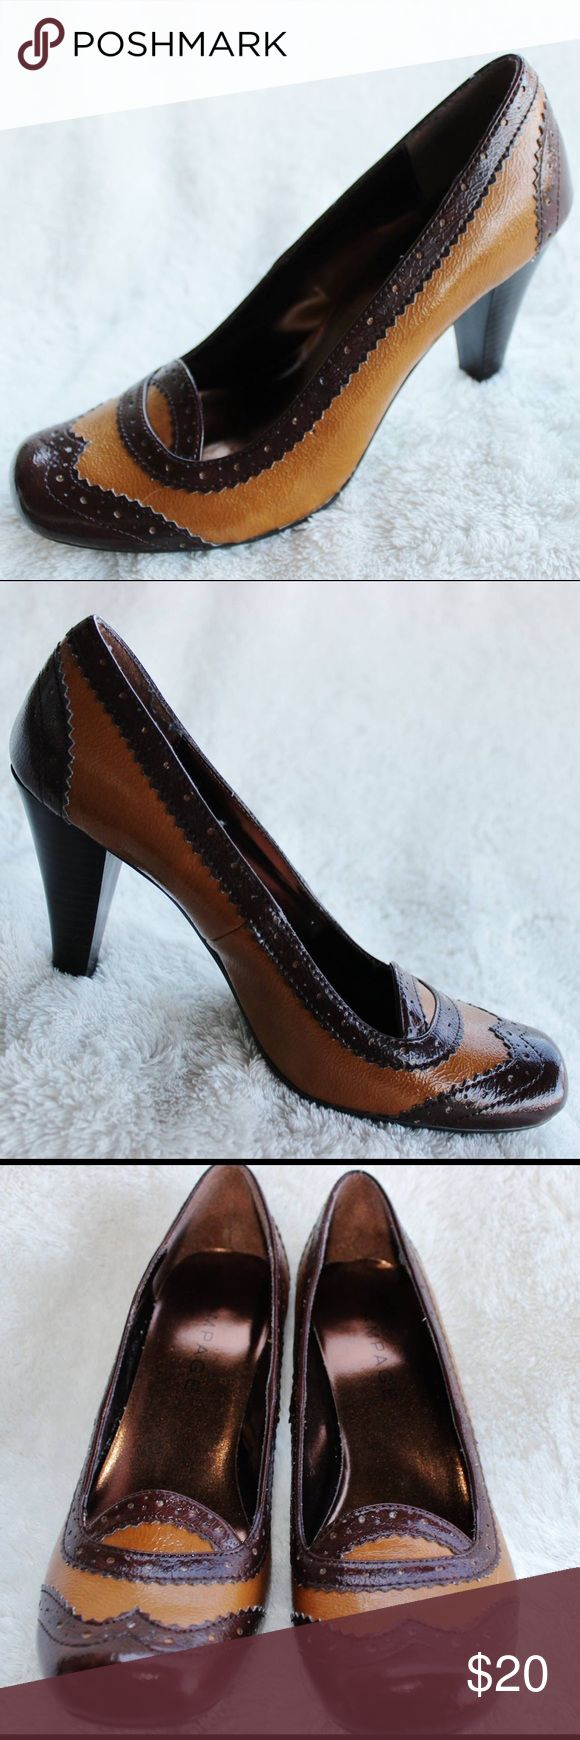 RAMPAGE Brown & Camel Pump Heels- Size 8.5M These palms are in great condition! They have been very gently loved. There are no spots or flaws on them. The heels measure 3 1/2 inches. Rampage Shoes Heels